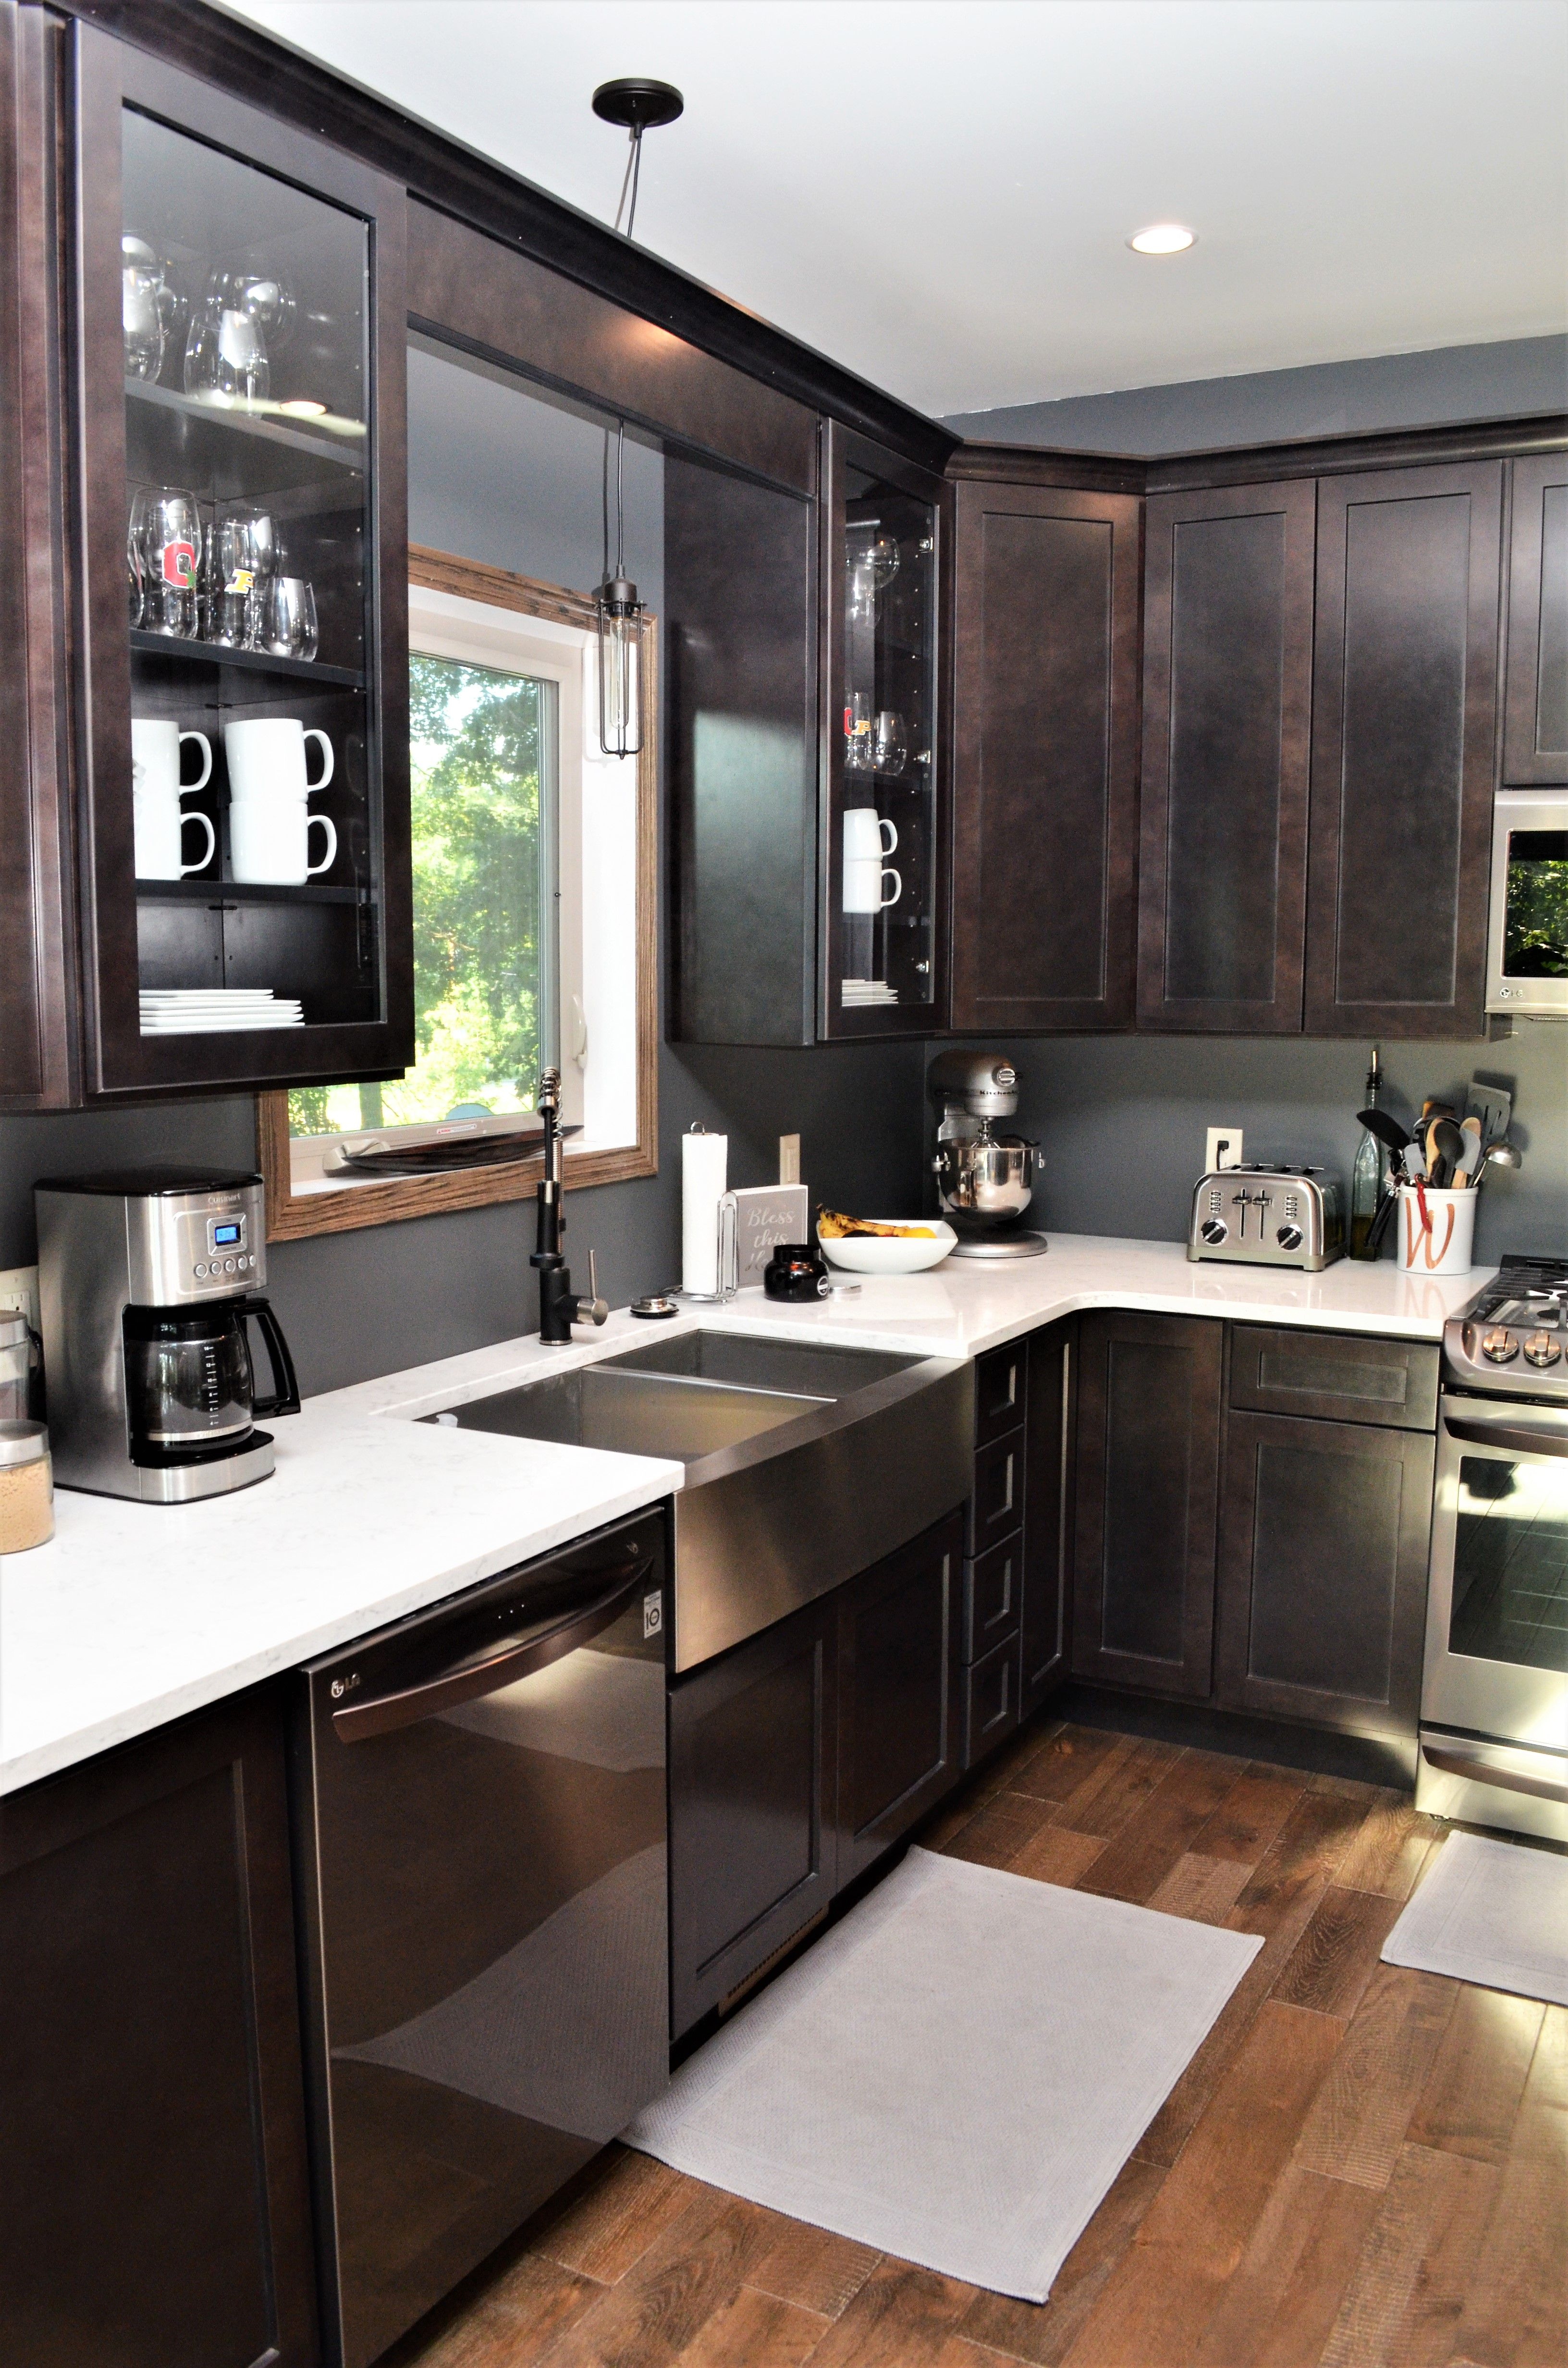 Haas Cabinetry Wood Species: Maple Cabinet Finish: Slate ... on Countertop Colors For Maple Cabinets  id=30065